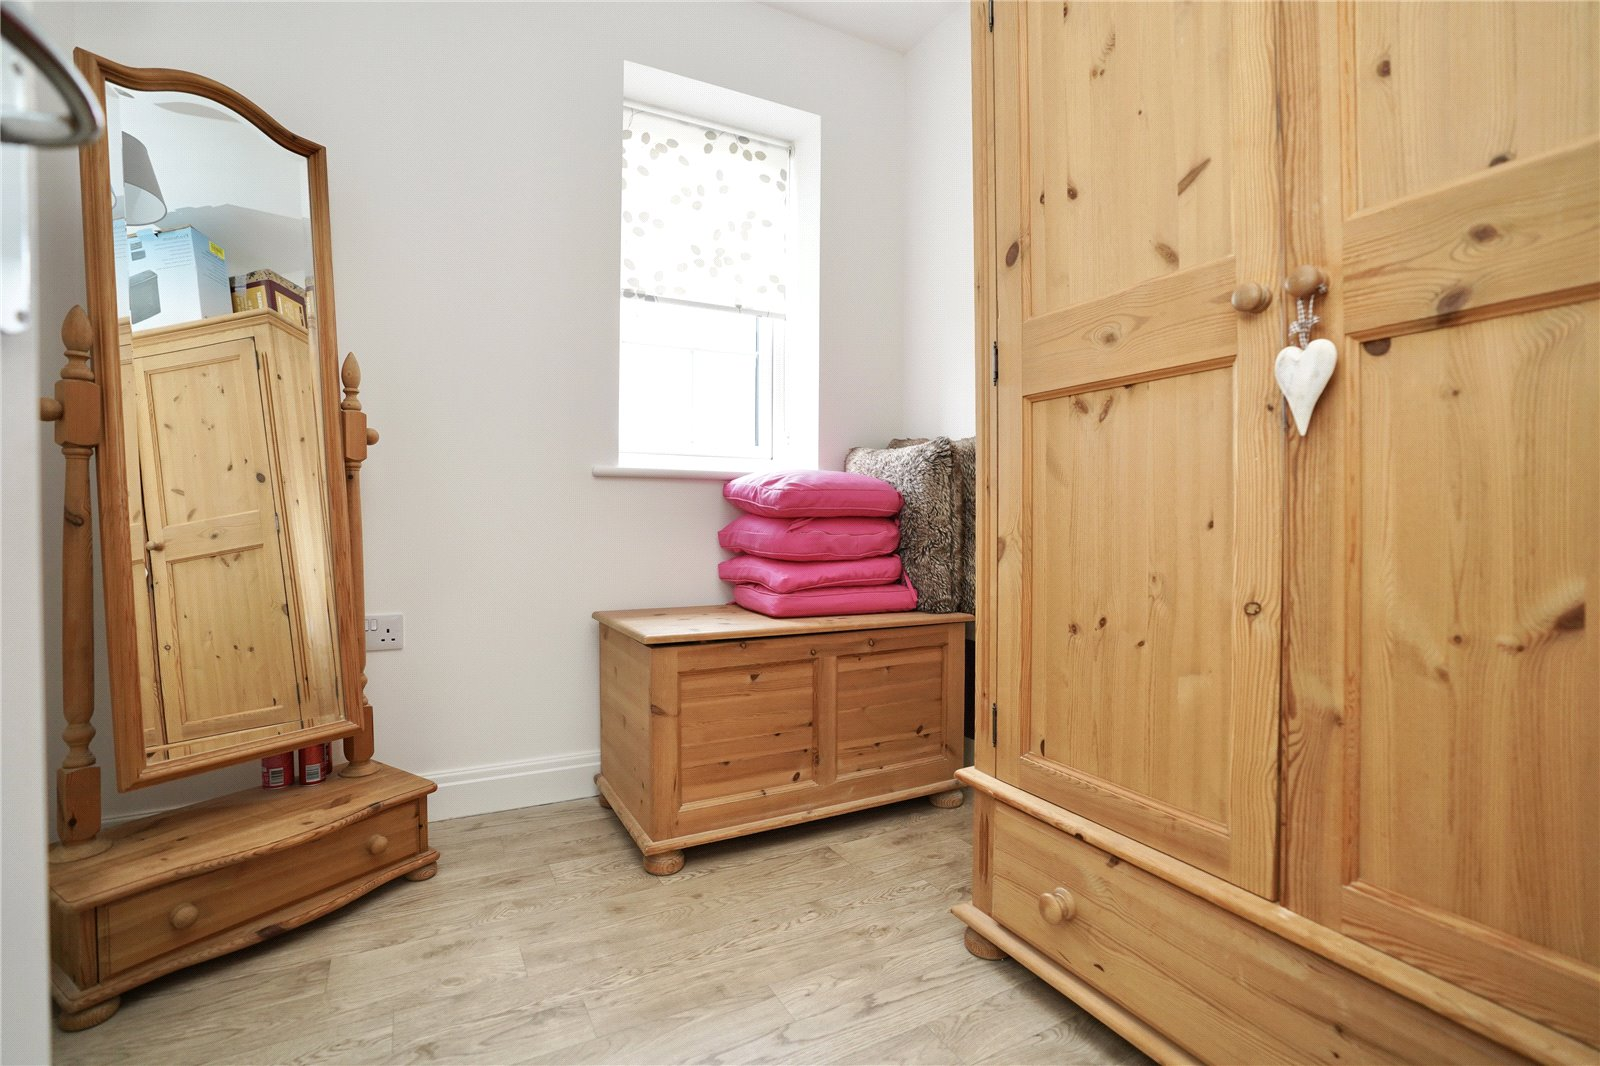 3 bed house for sale in Sawtry, PE28 5ZJ 9